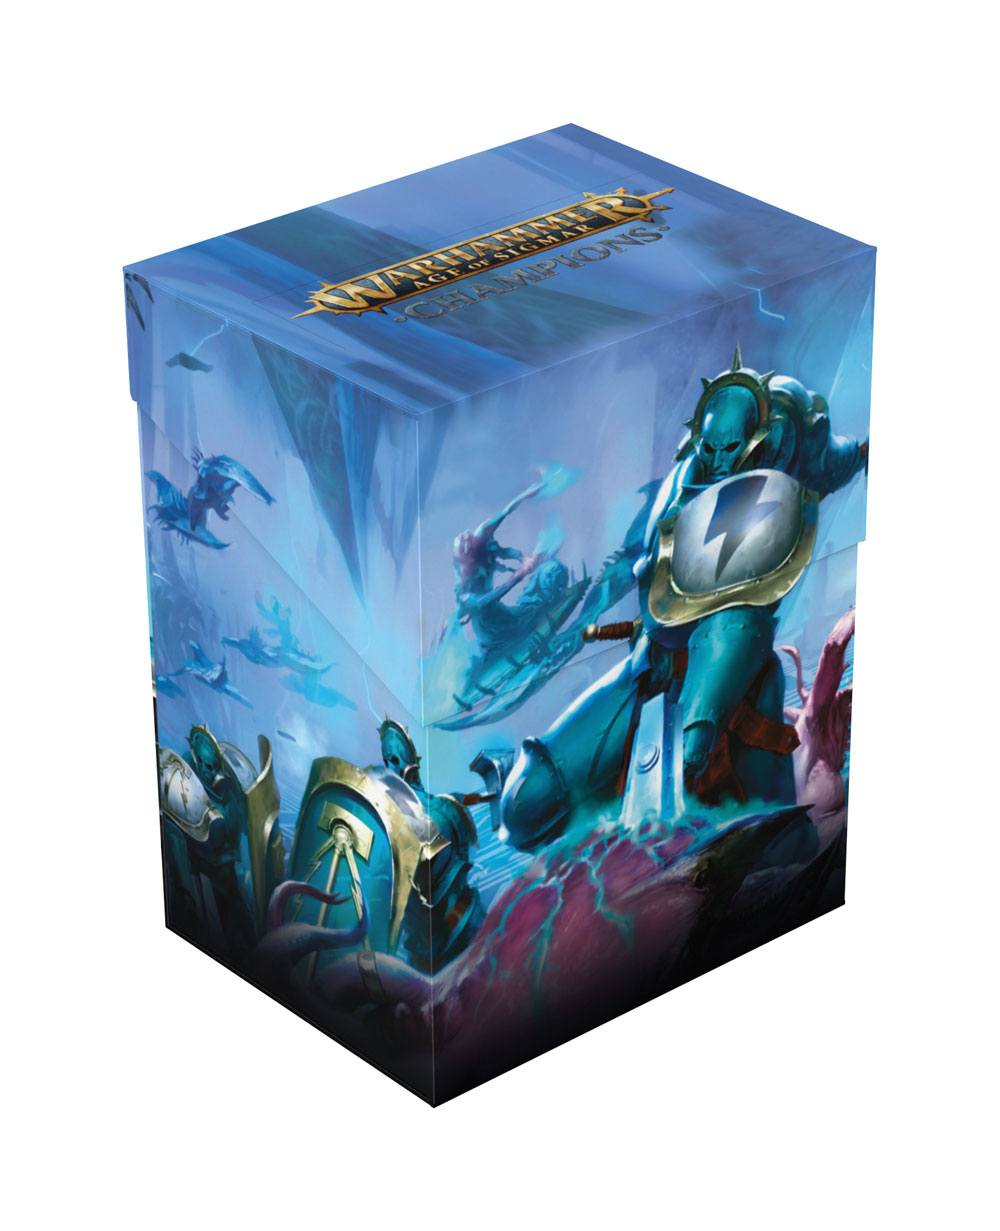 Warhammer Age of Sigmar: Champions Basic Deck Case 80+ Standard Size Order: Triumphant Smash